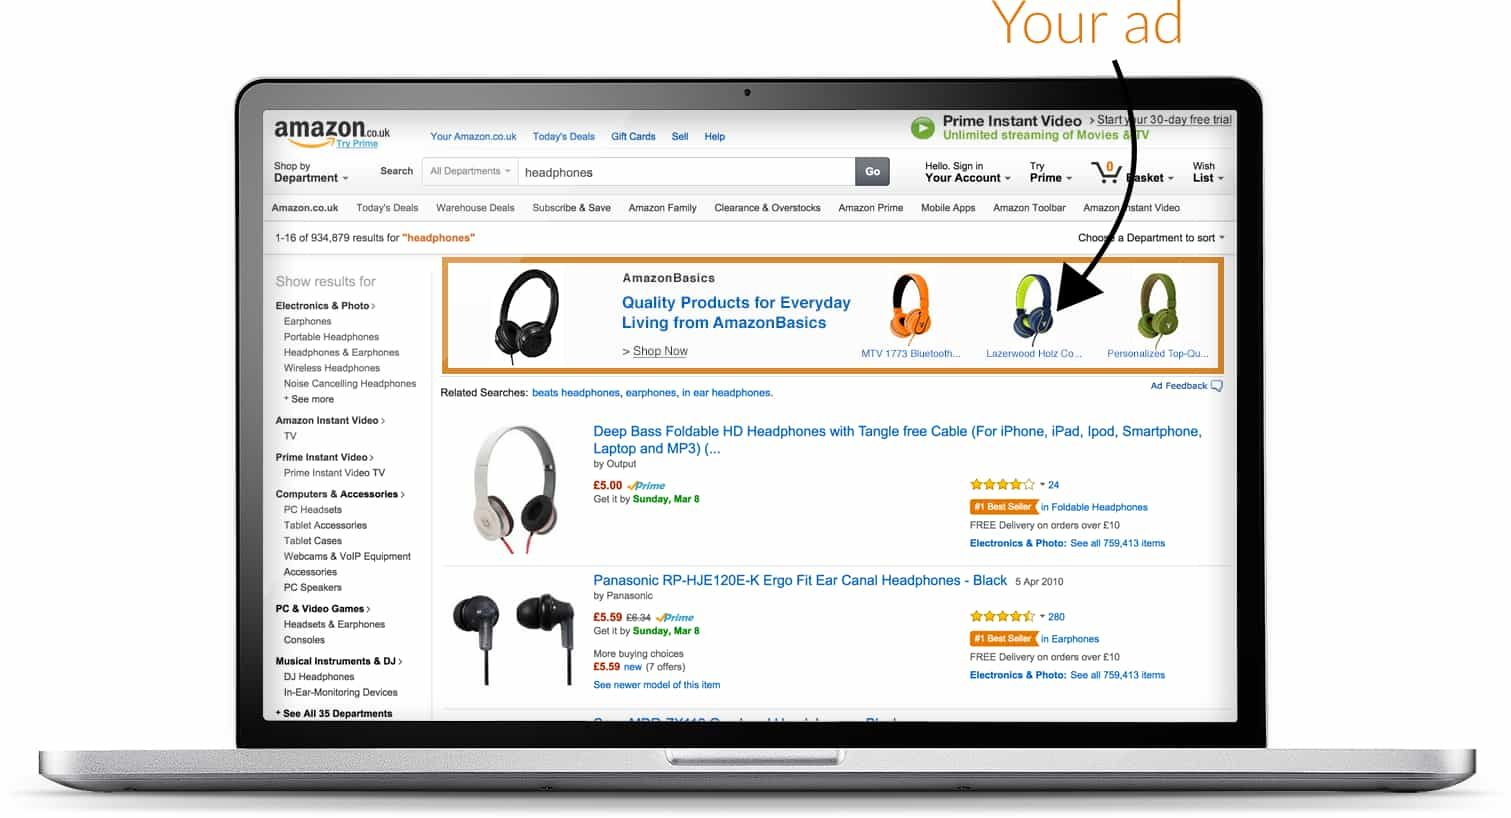 Amazon_marketing_services are something you should not